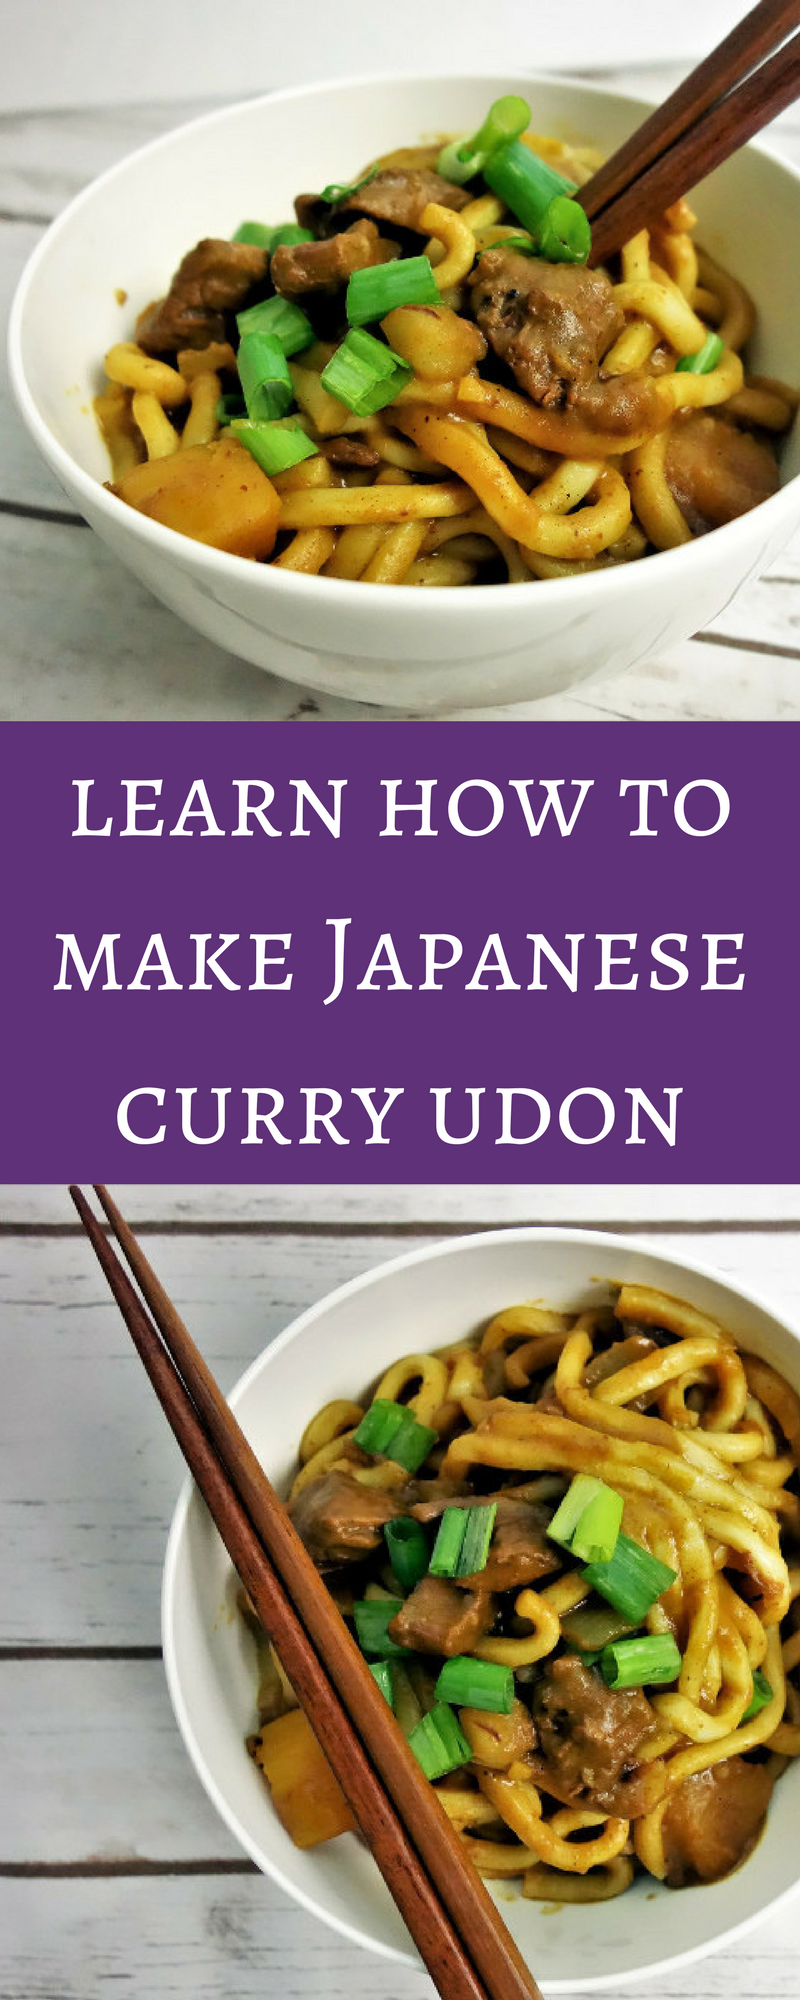 Curry Udon Noodles With Beef Recipe Curry Udon Beef Curry Curry Recipes